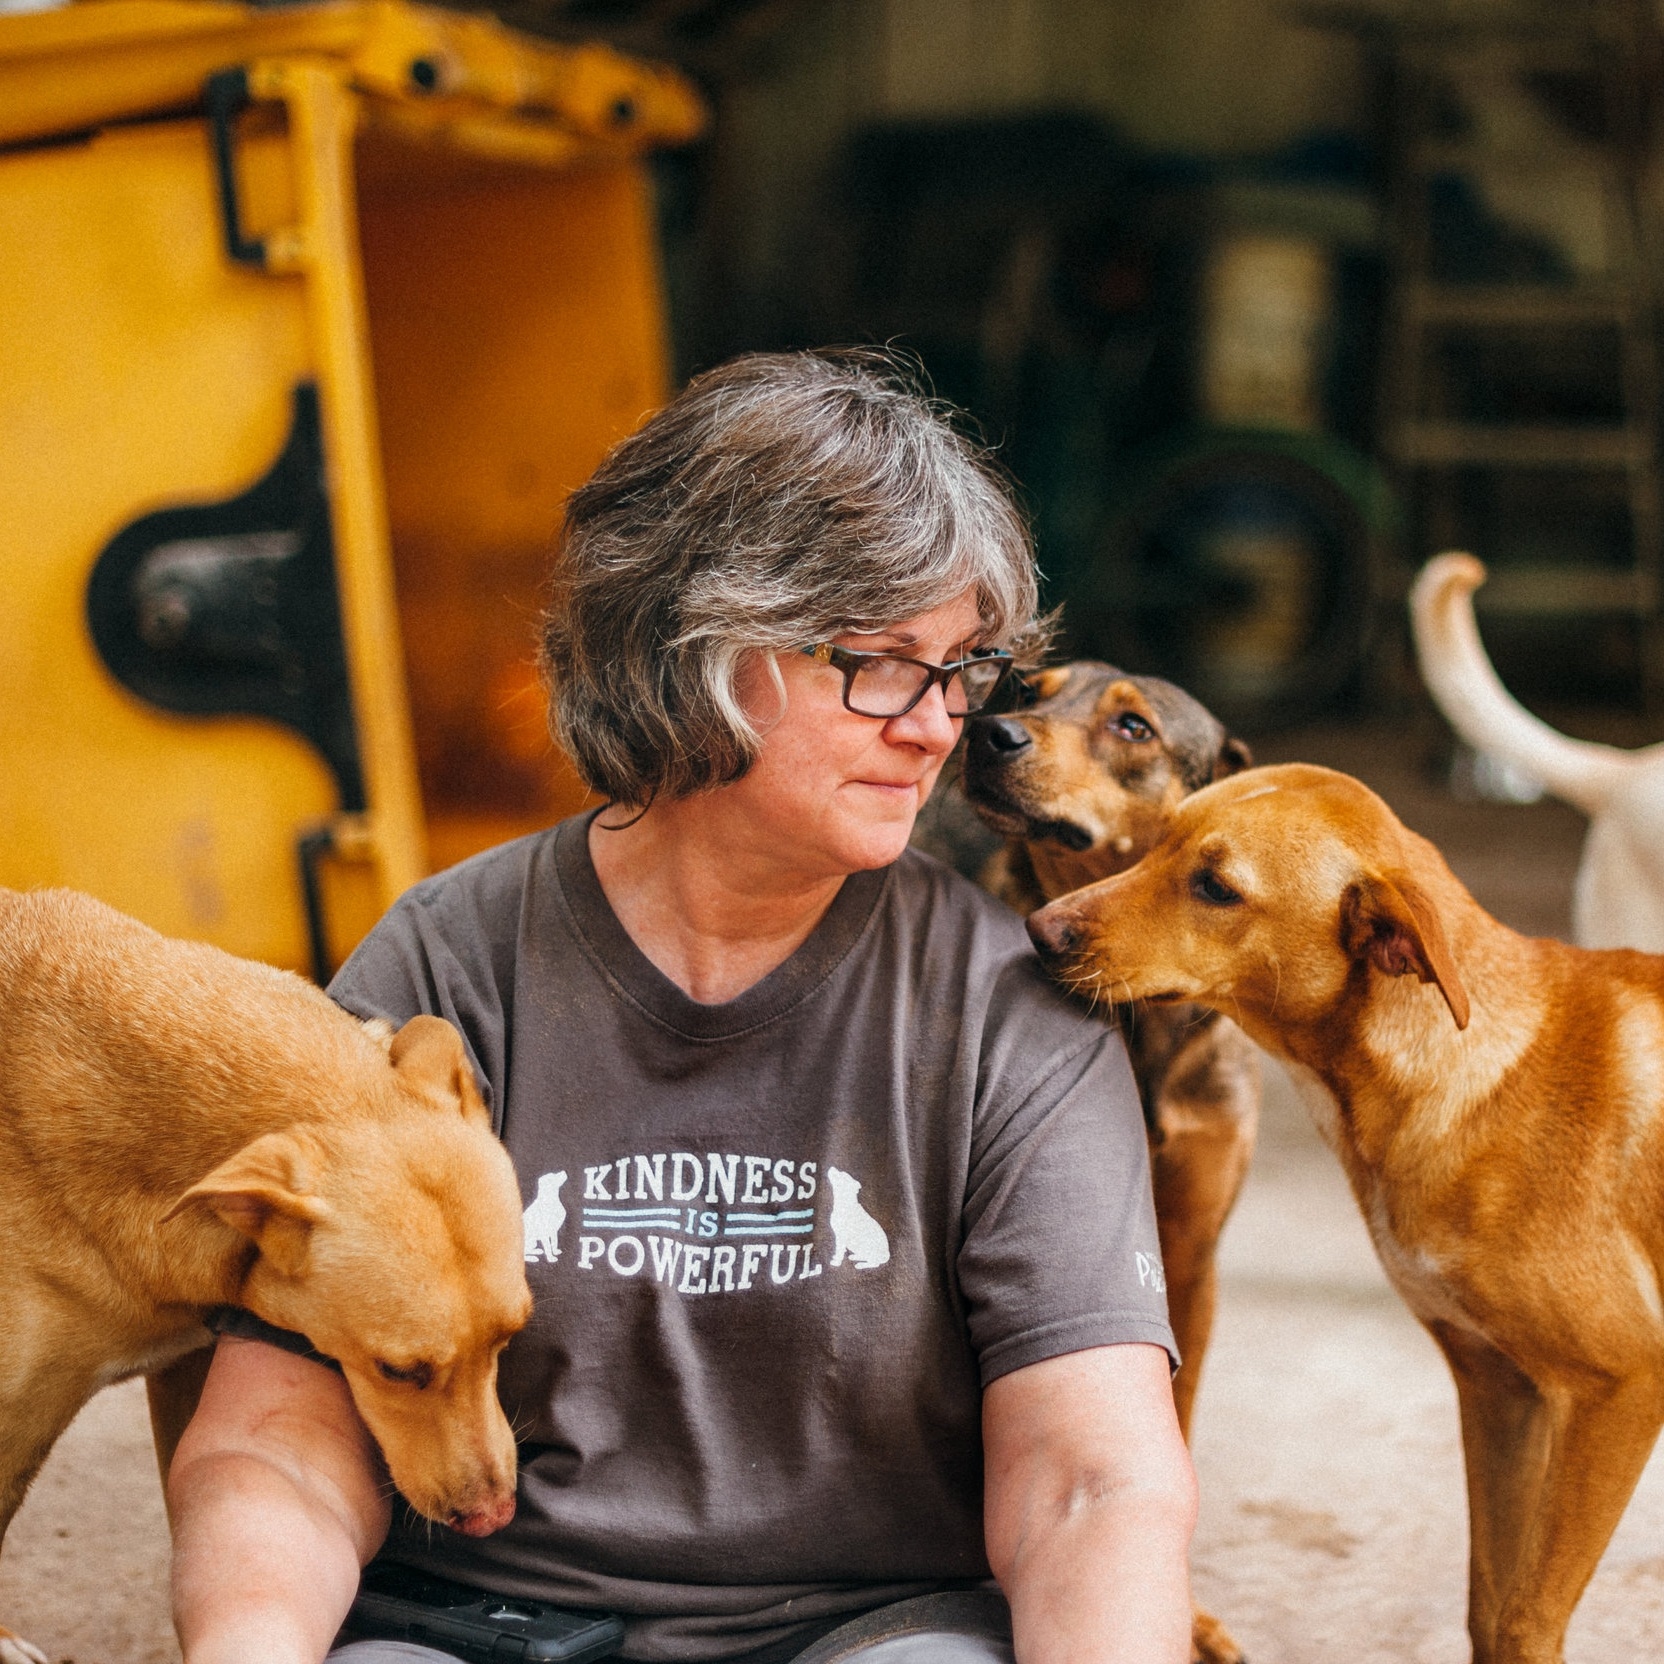 LAURA HILLS - Owner, TrainerKPA-CTP; CPDT-KSA; CCFT; CTDI; CGC evaluator; C.L.A.S.S. evaluator; VSPDT; Certified Fear Free TrainerLaura is the founder and owner of The Dogs' Spot – Dog Training Center. Laura has been teaching people how to train their dogs since 2004.Laura specializes in our Family Manners series, including Canine Good Citizen and Canine Life and Social Skills classes. She also leads the FitPaws Canine Conditioning classes.Laura lives with four dogs: Skeeter, Guinness, Fiona and Poppet